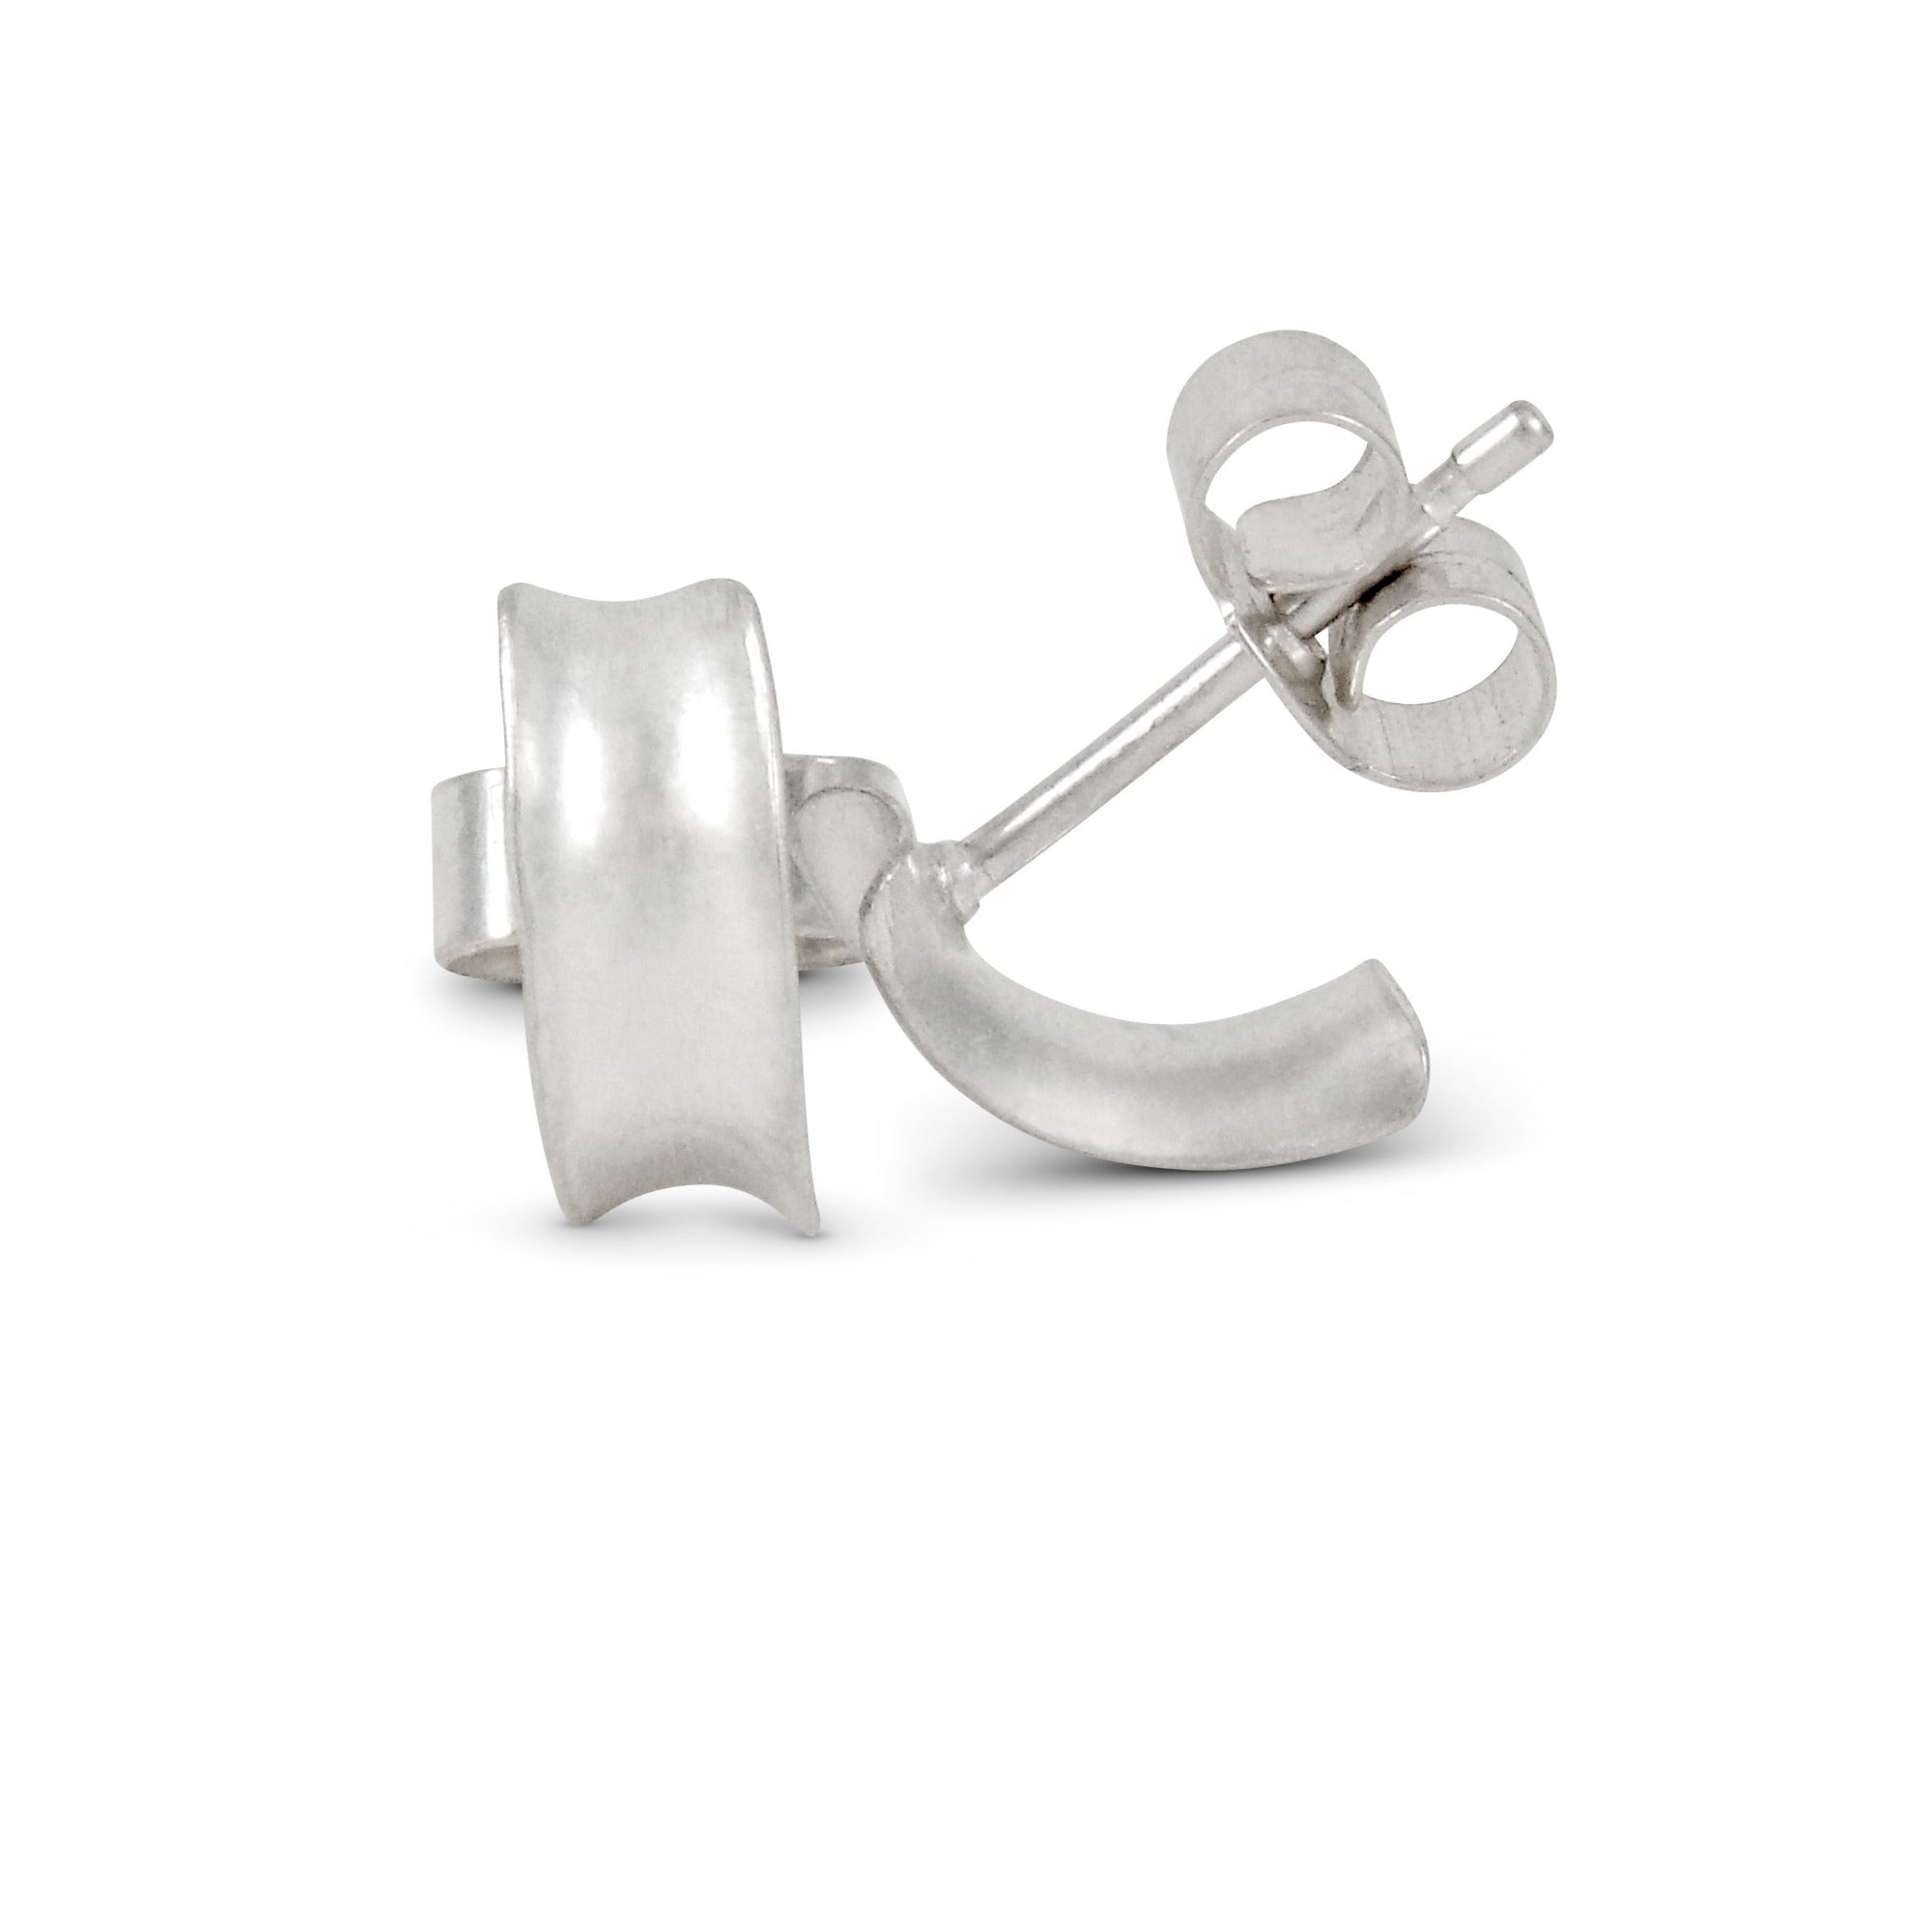 Demilune studs style 1, plain silver, showing  one stud from the front and one from the side with pin and butterfly